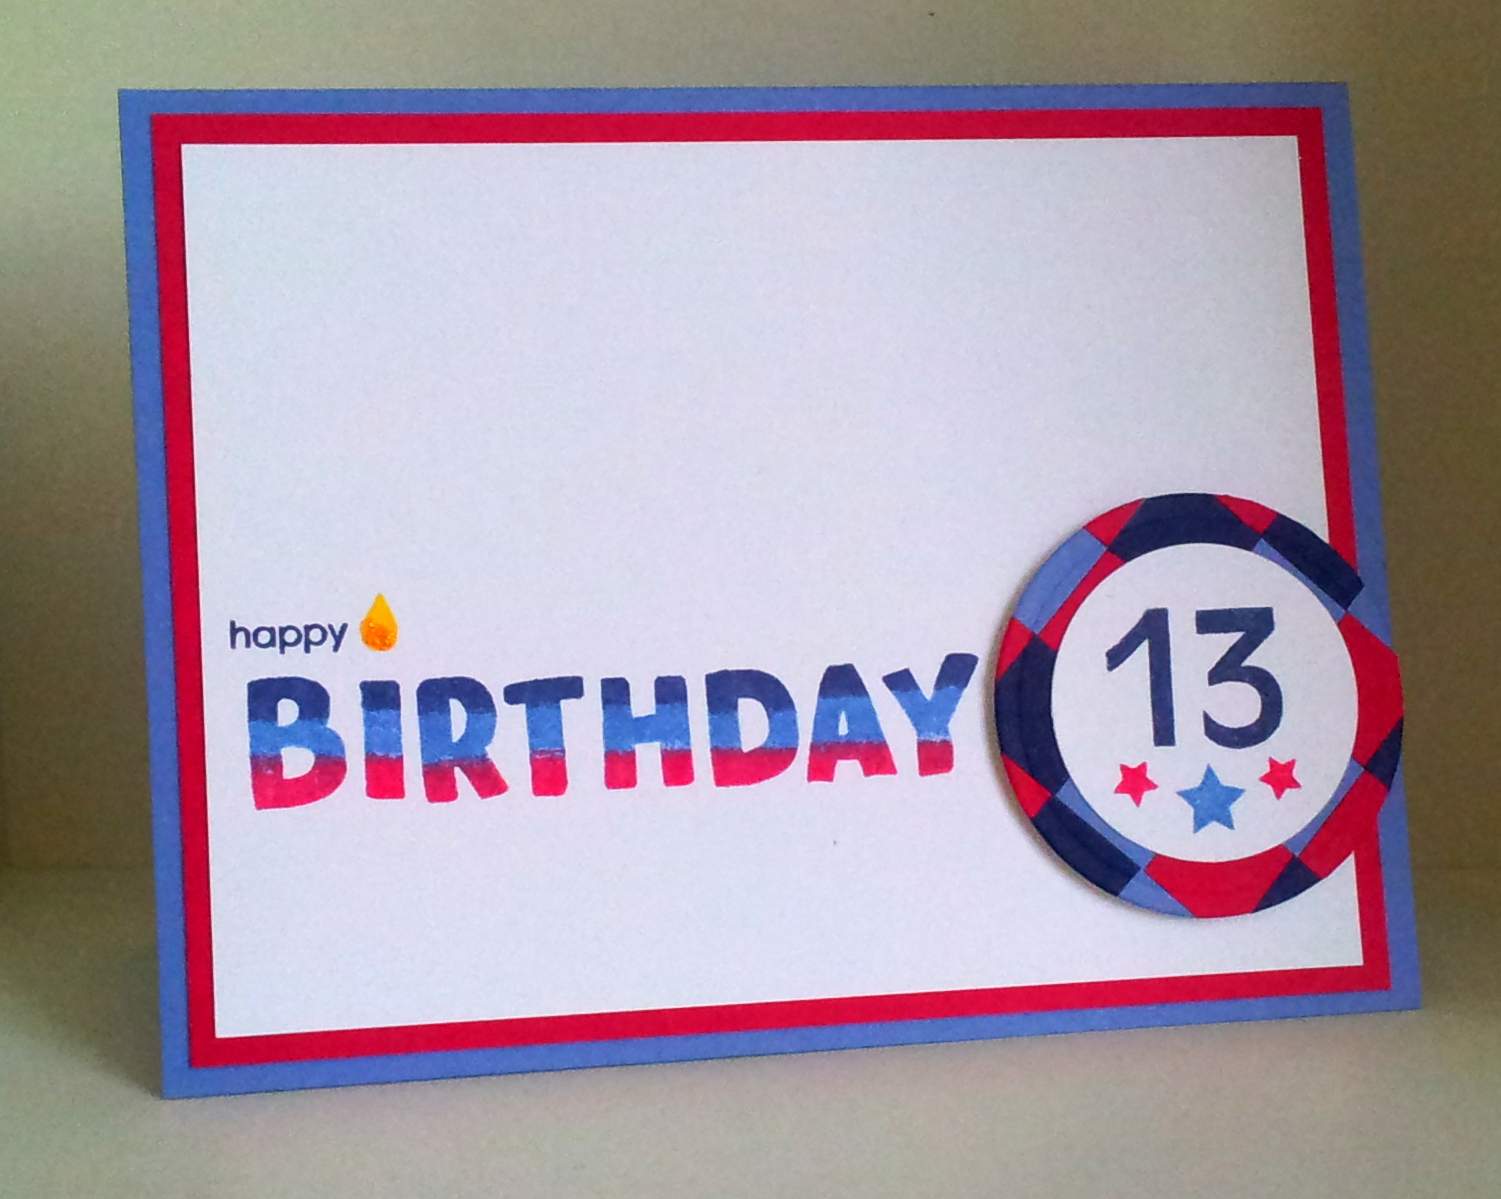 13th birthday card ideas gallery birthday cake decoration ideas card sayings best of maskerade happy 13th birthday happy 13th birthday searchgroupfo bookmarktalkfo Image collections